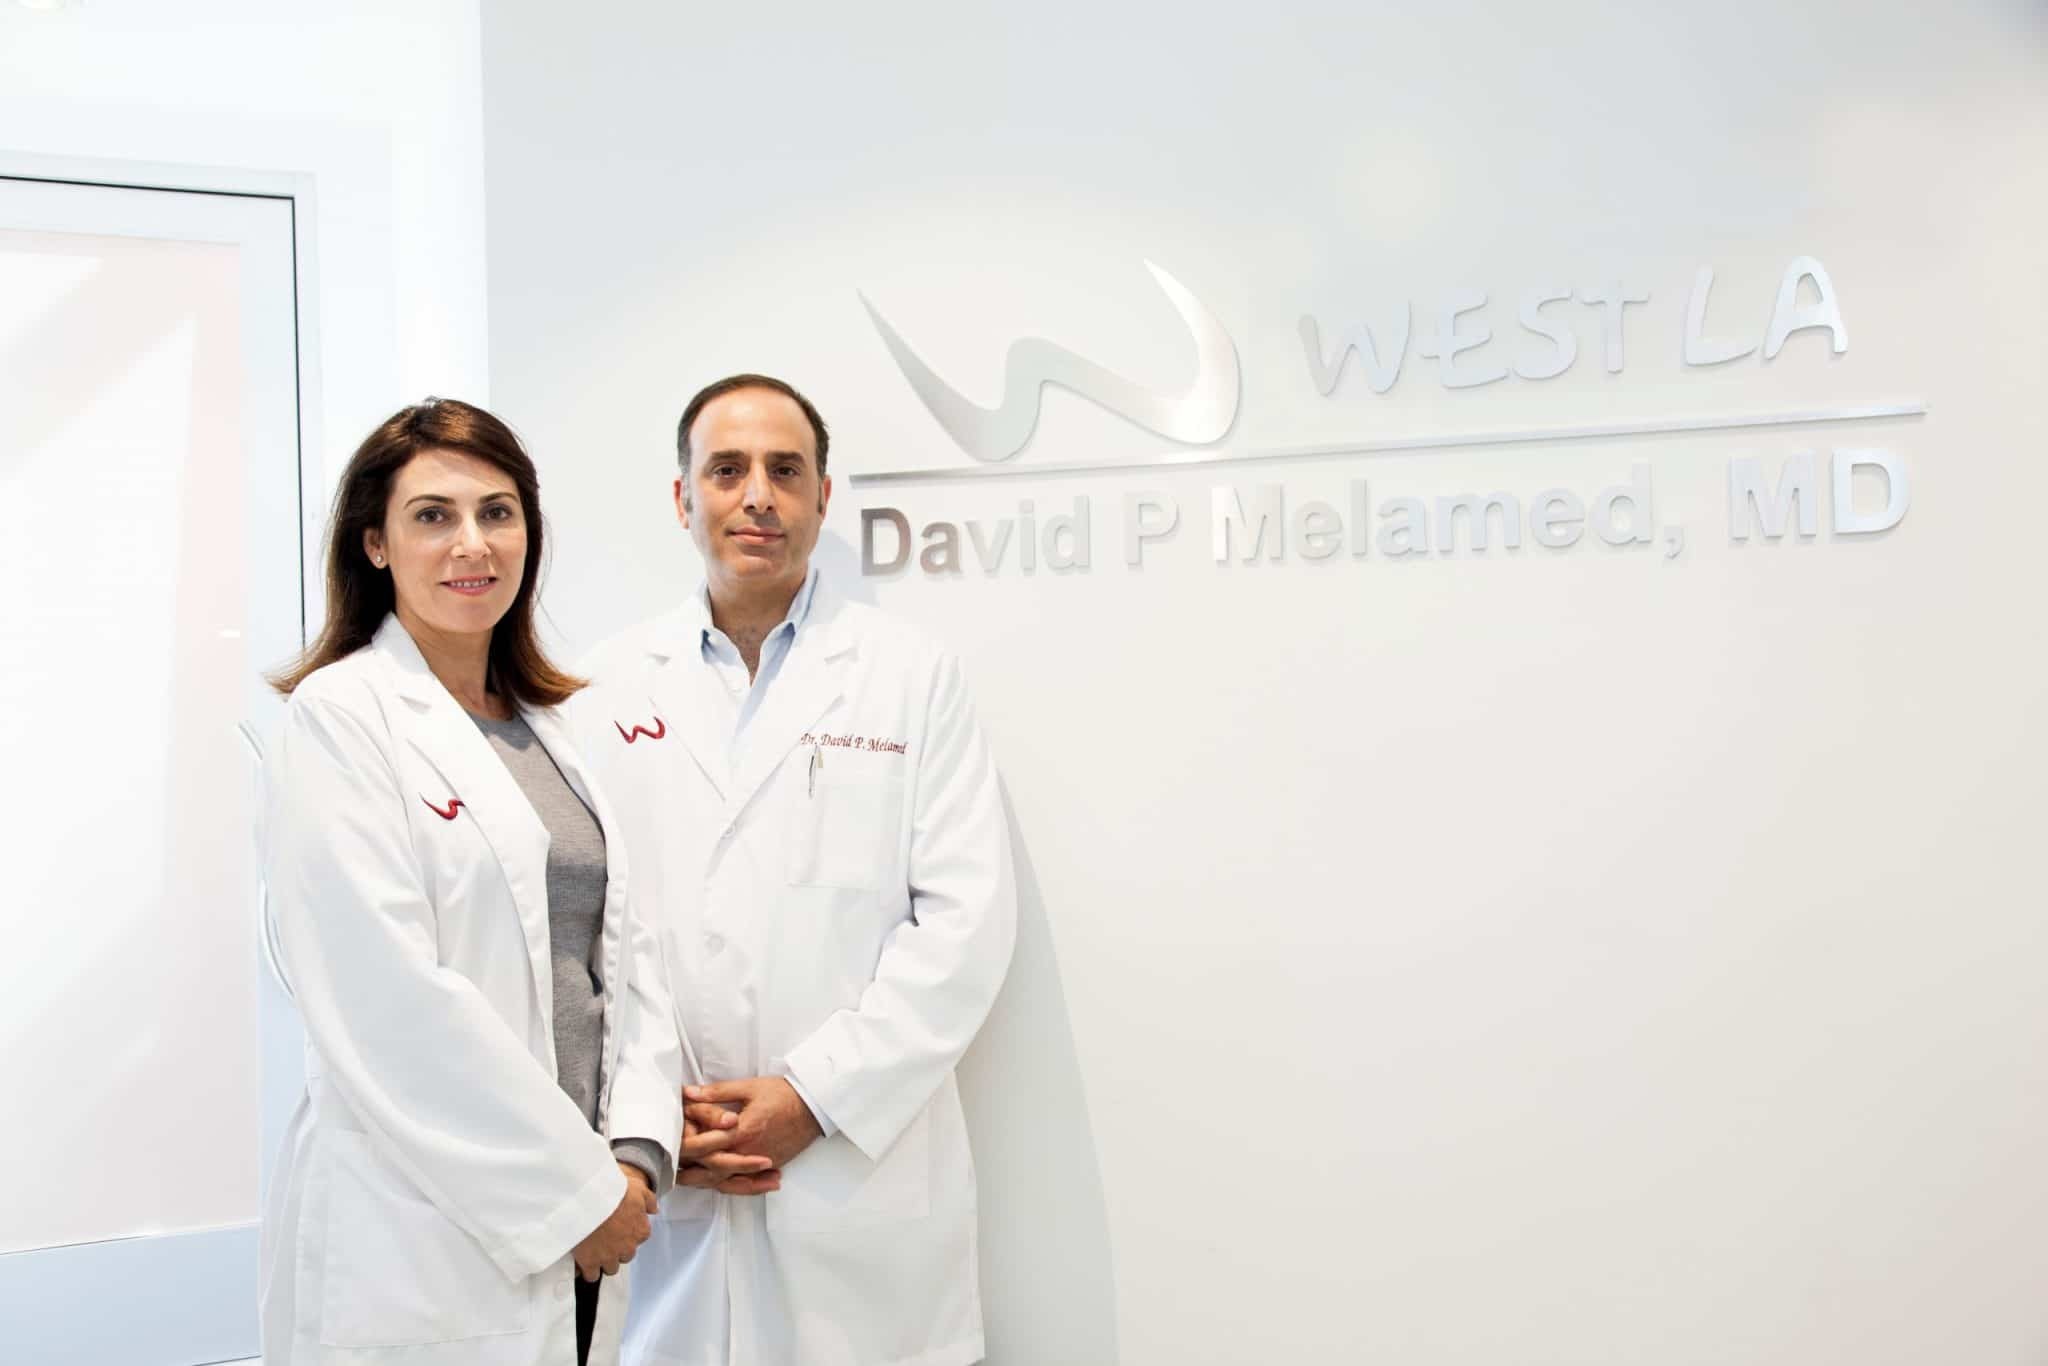 The West LA Hair Difference thanks to Dr. Melamed